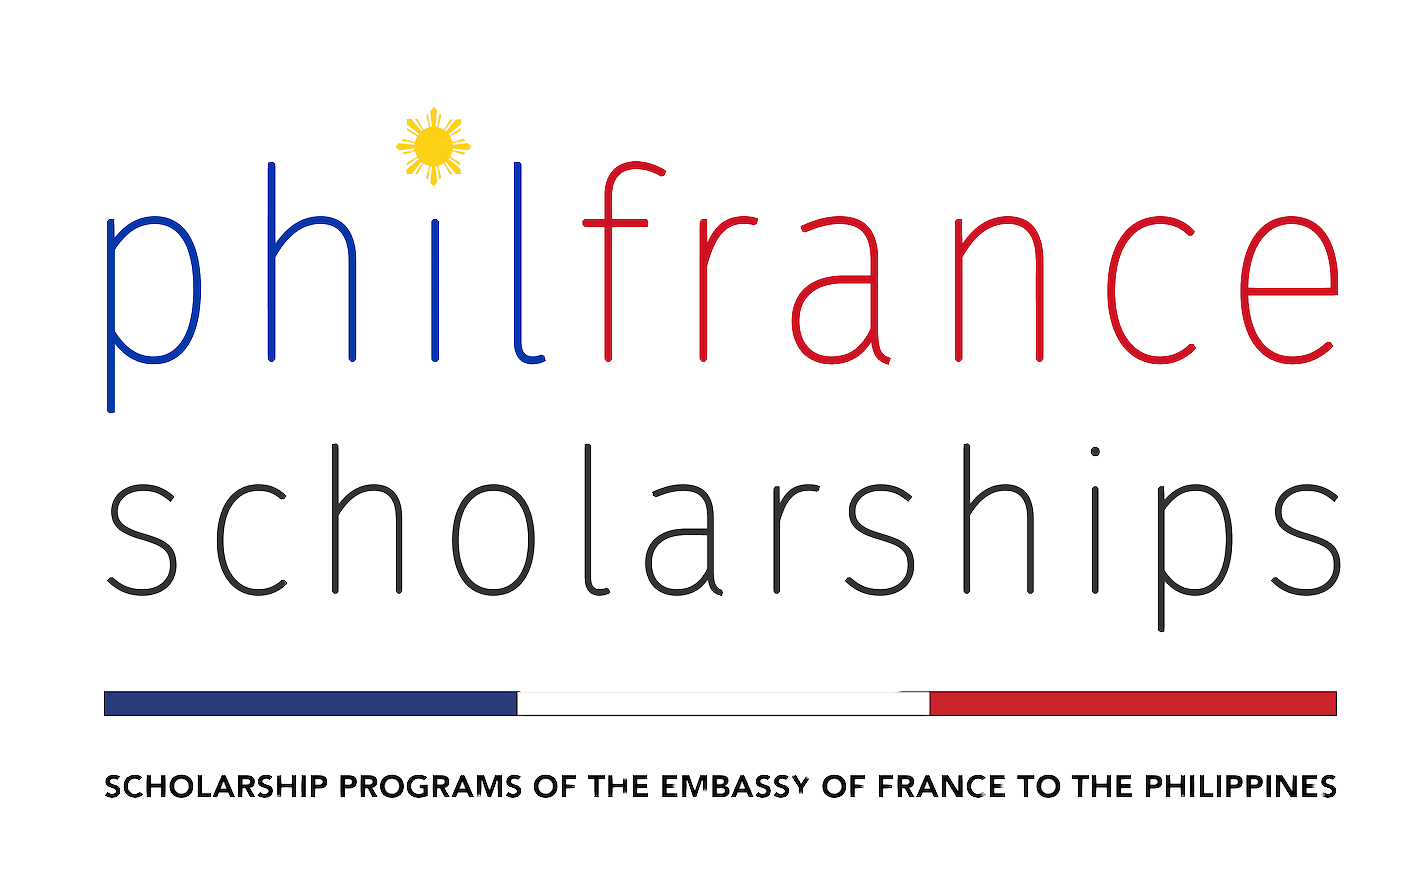 Philfrance scholarship